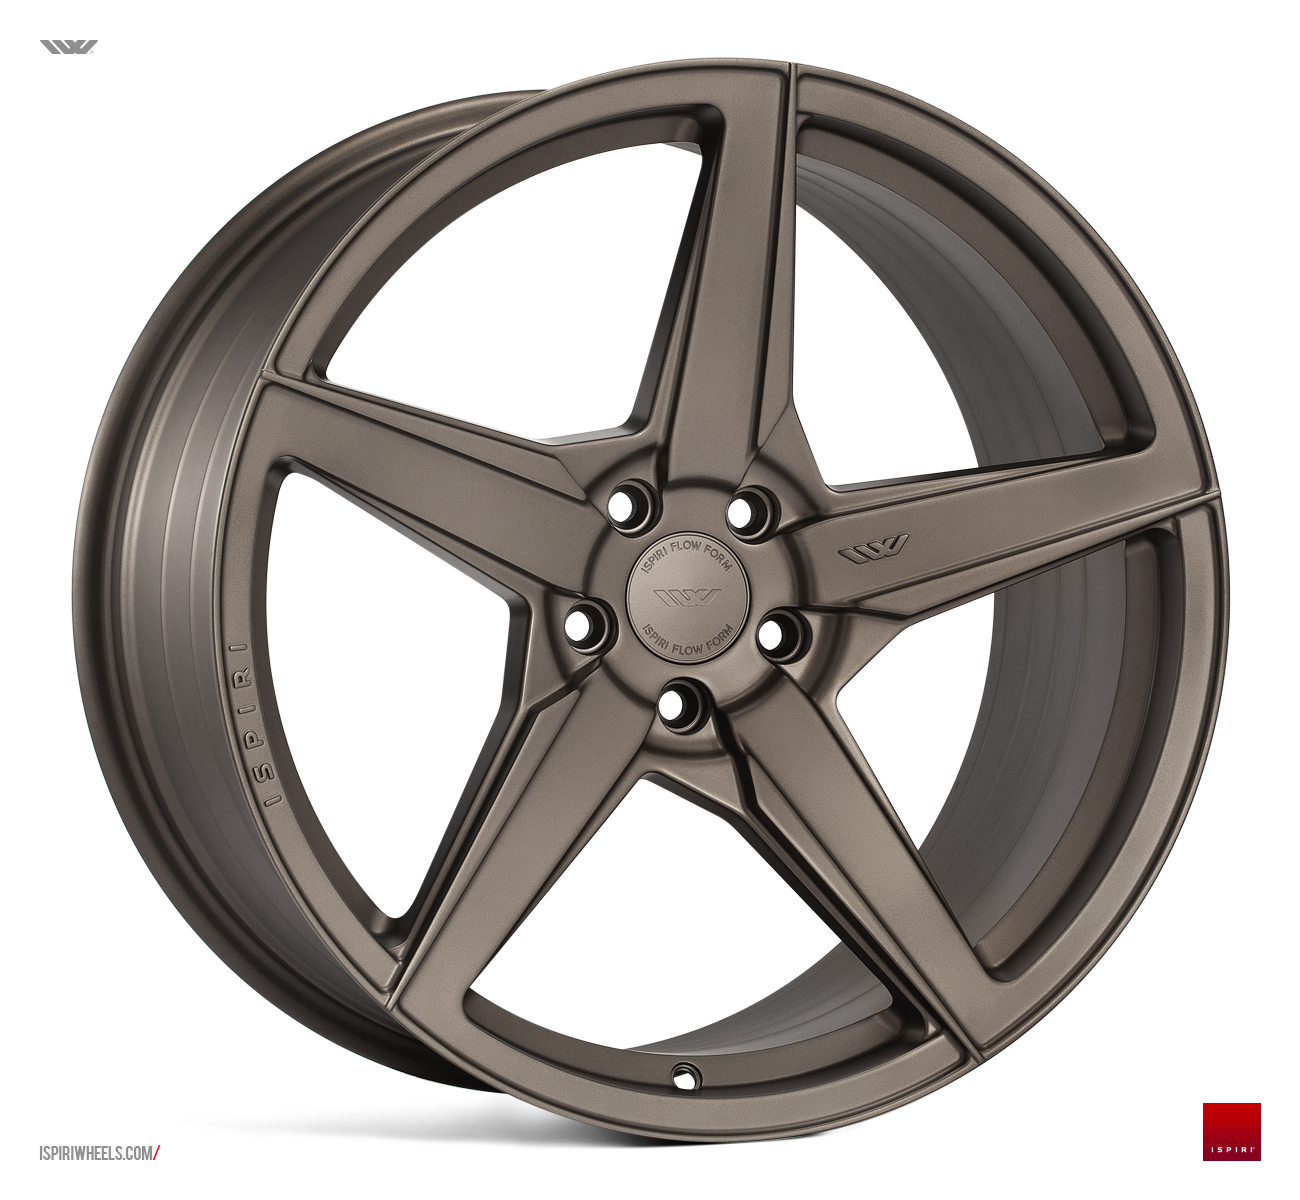 "NEW 21"" ISPIRI FFR5 5 SPOKE ALLOYS IN MATT CARBON BRONZE, WITH WIDER 10.5"" REAR"